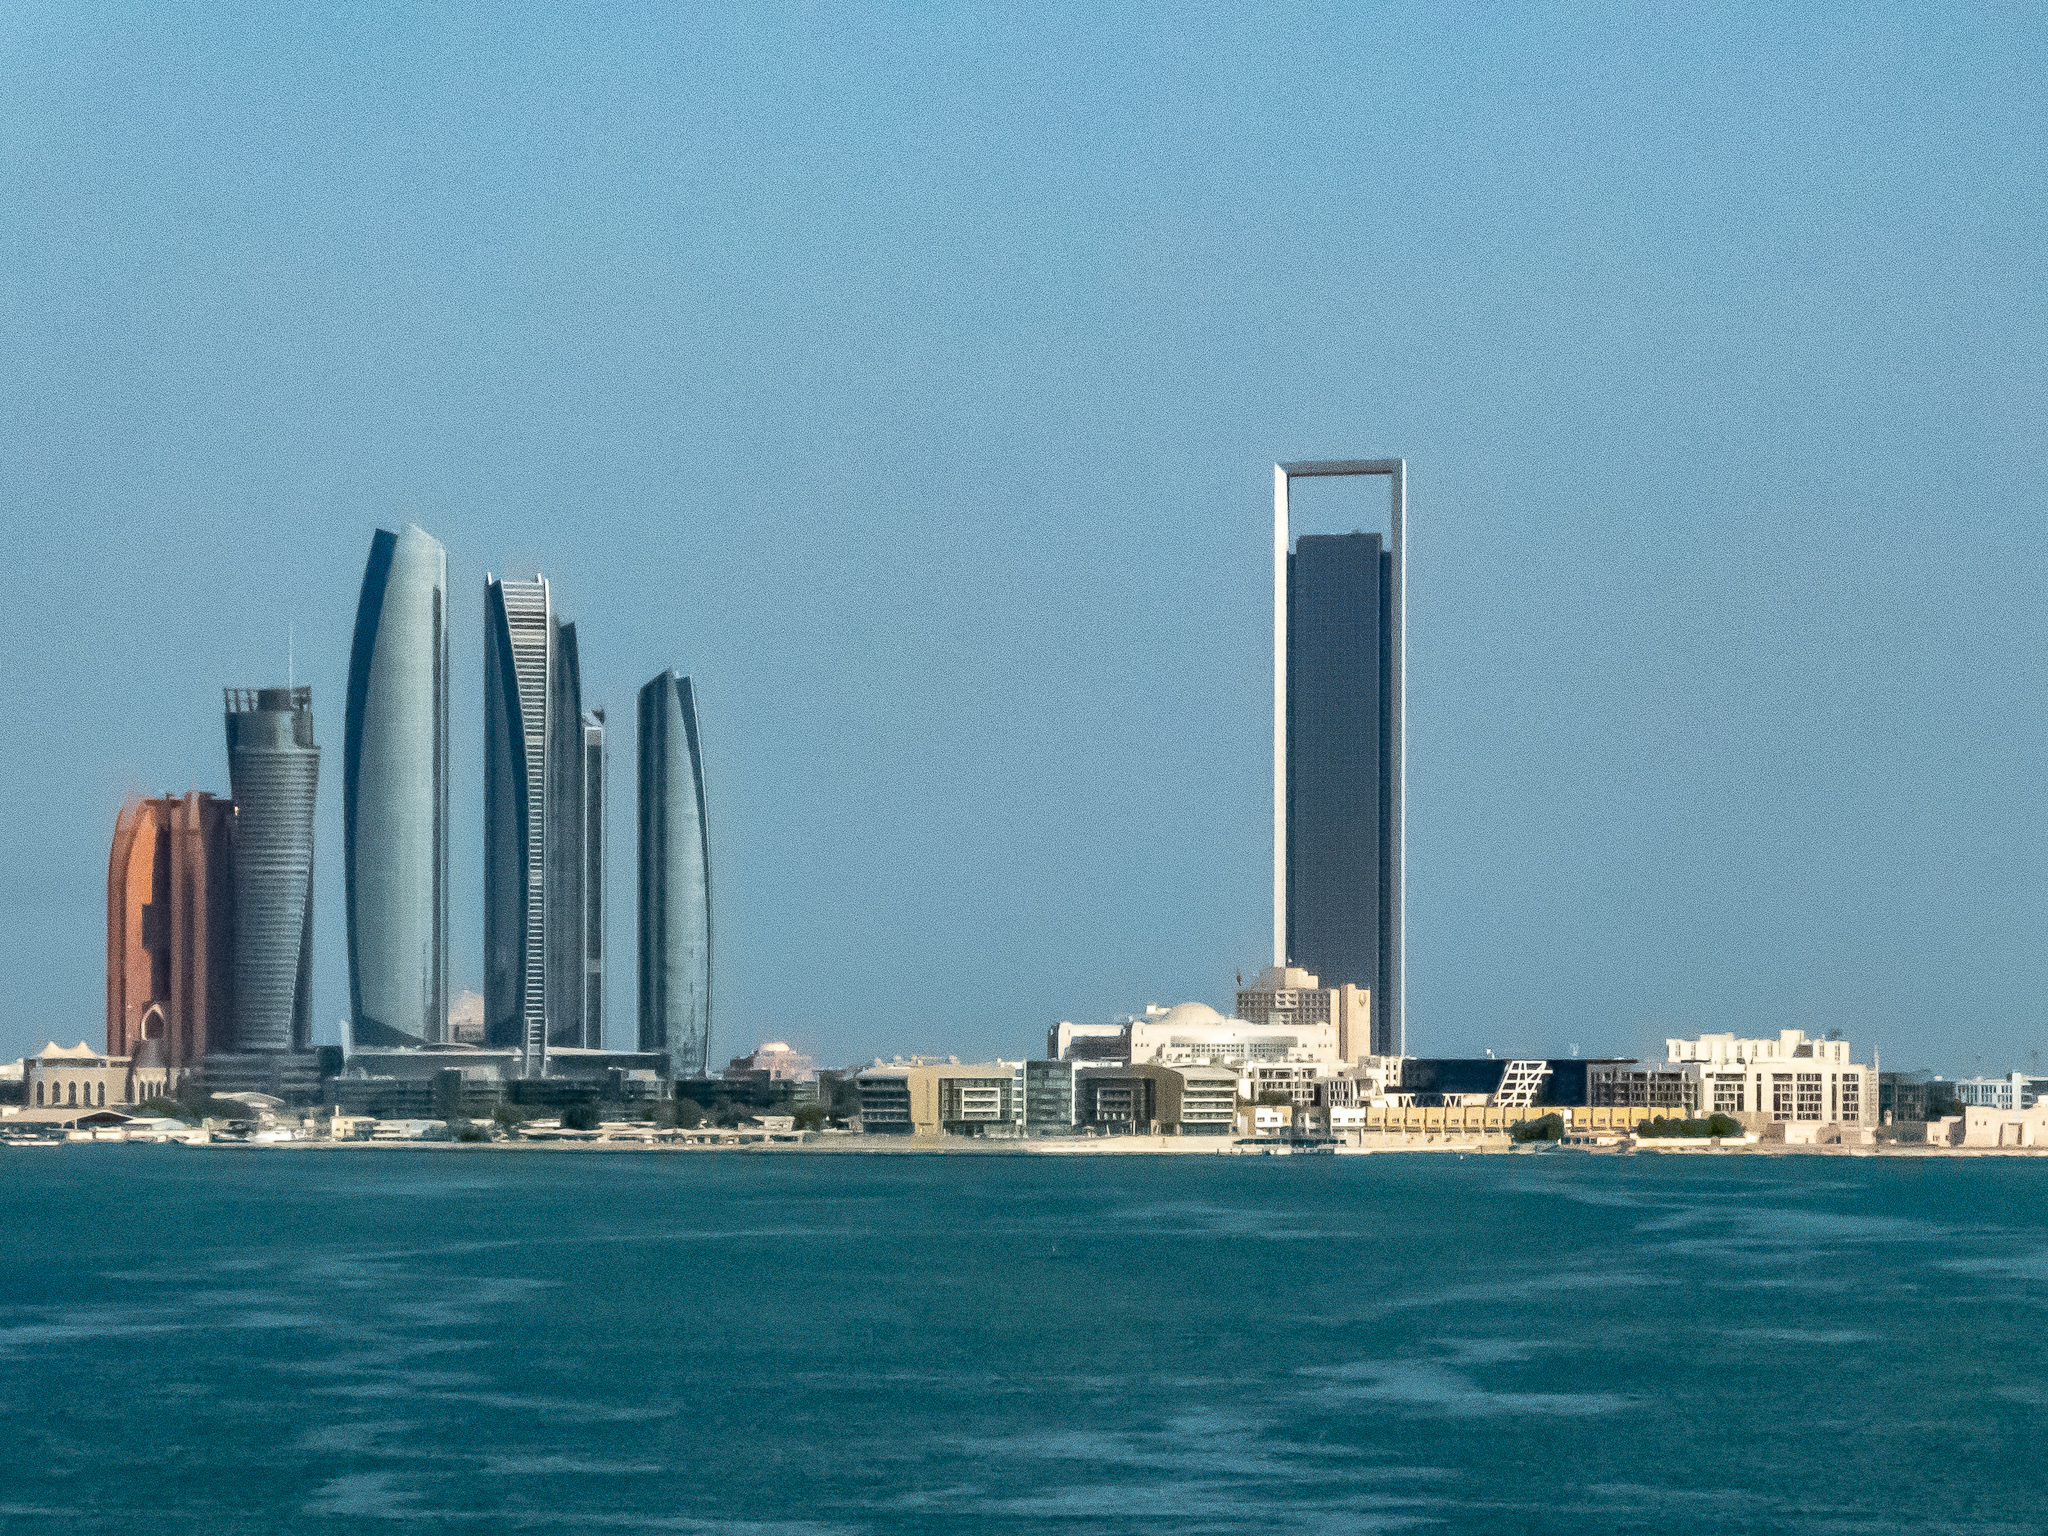 Abu Dhabi skyline seen daily on my running route